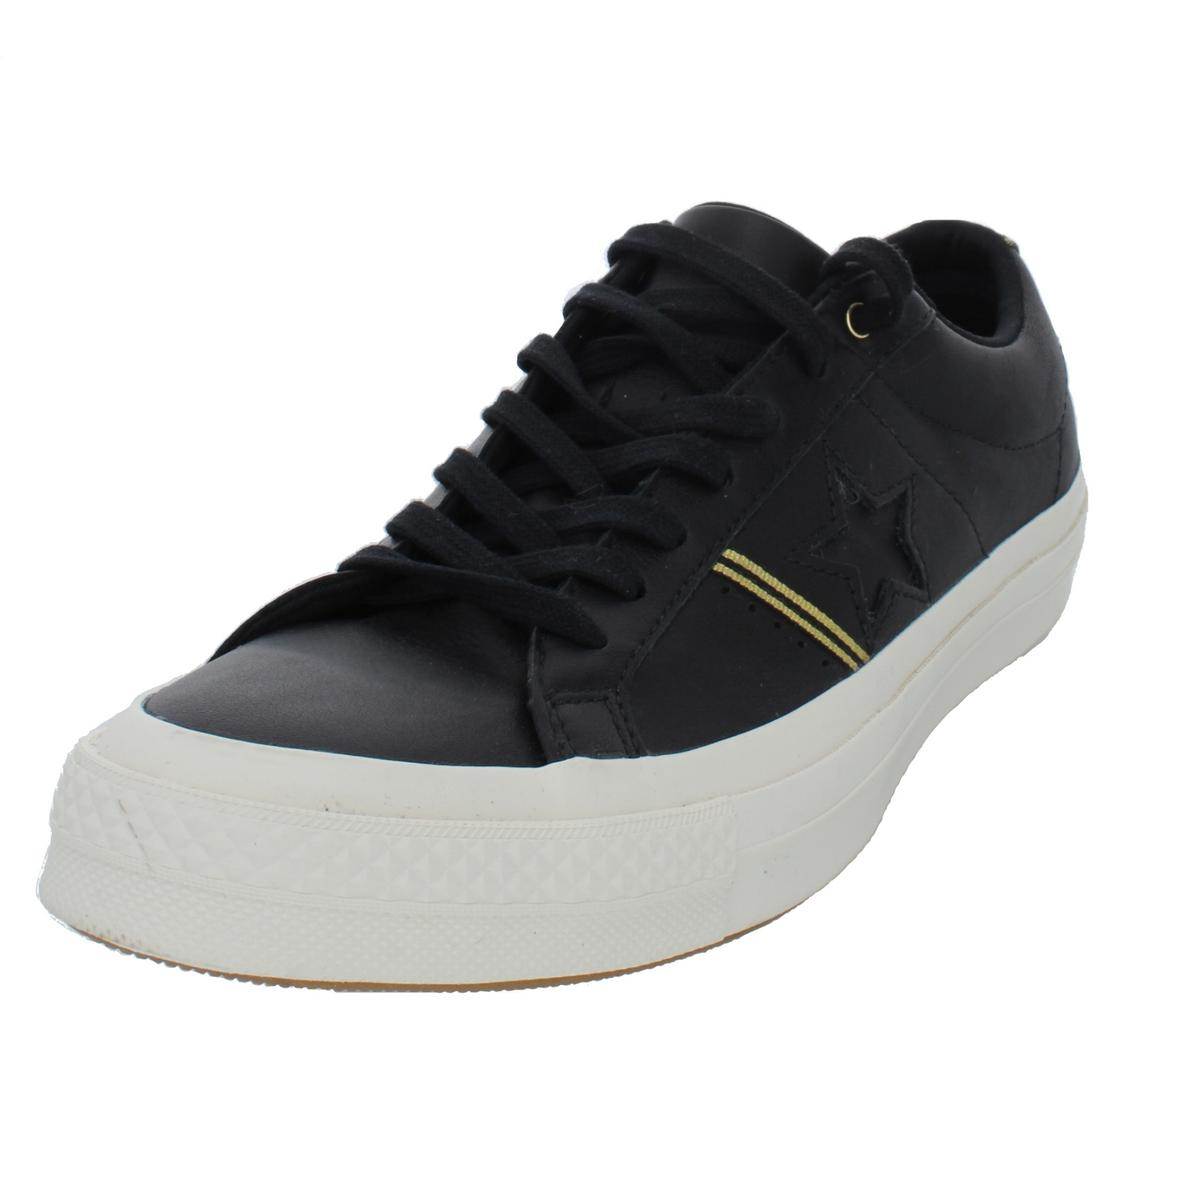 c71adc016f372b Details about Converse Womens One Star Ox Leather Low Top Fashion Sneakers  Shoes BHFO 5886